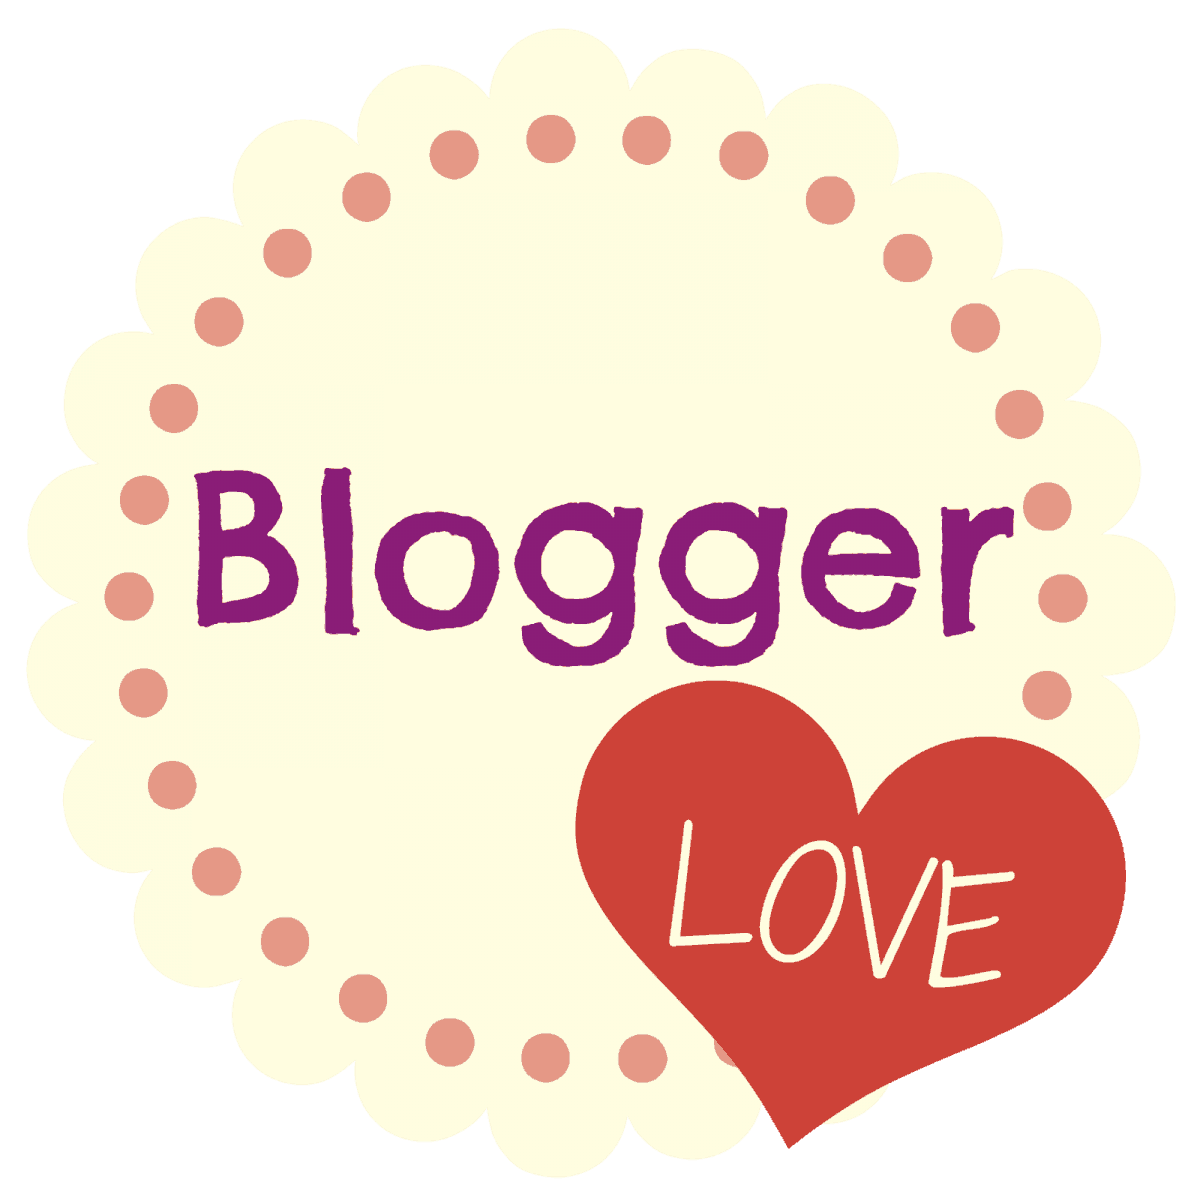 Sharing A Little Blogger Love